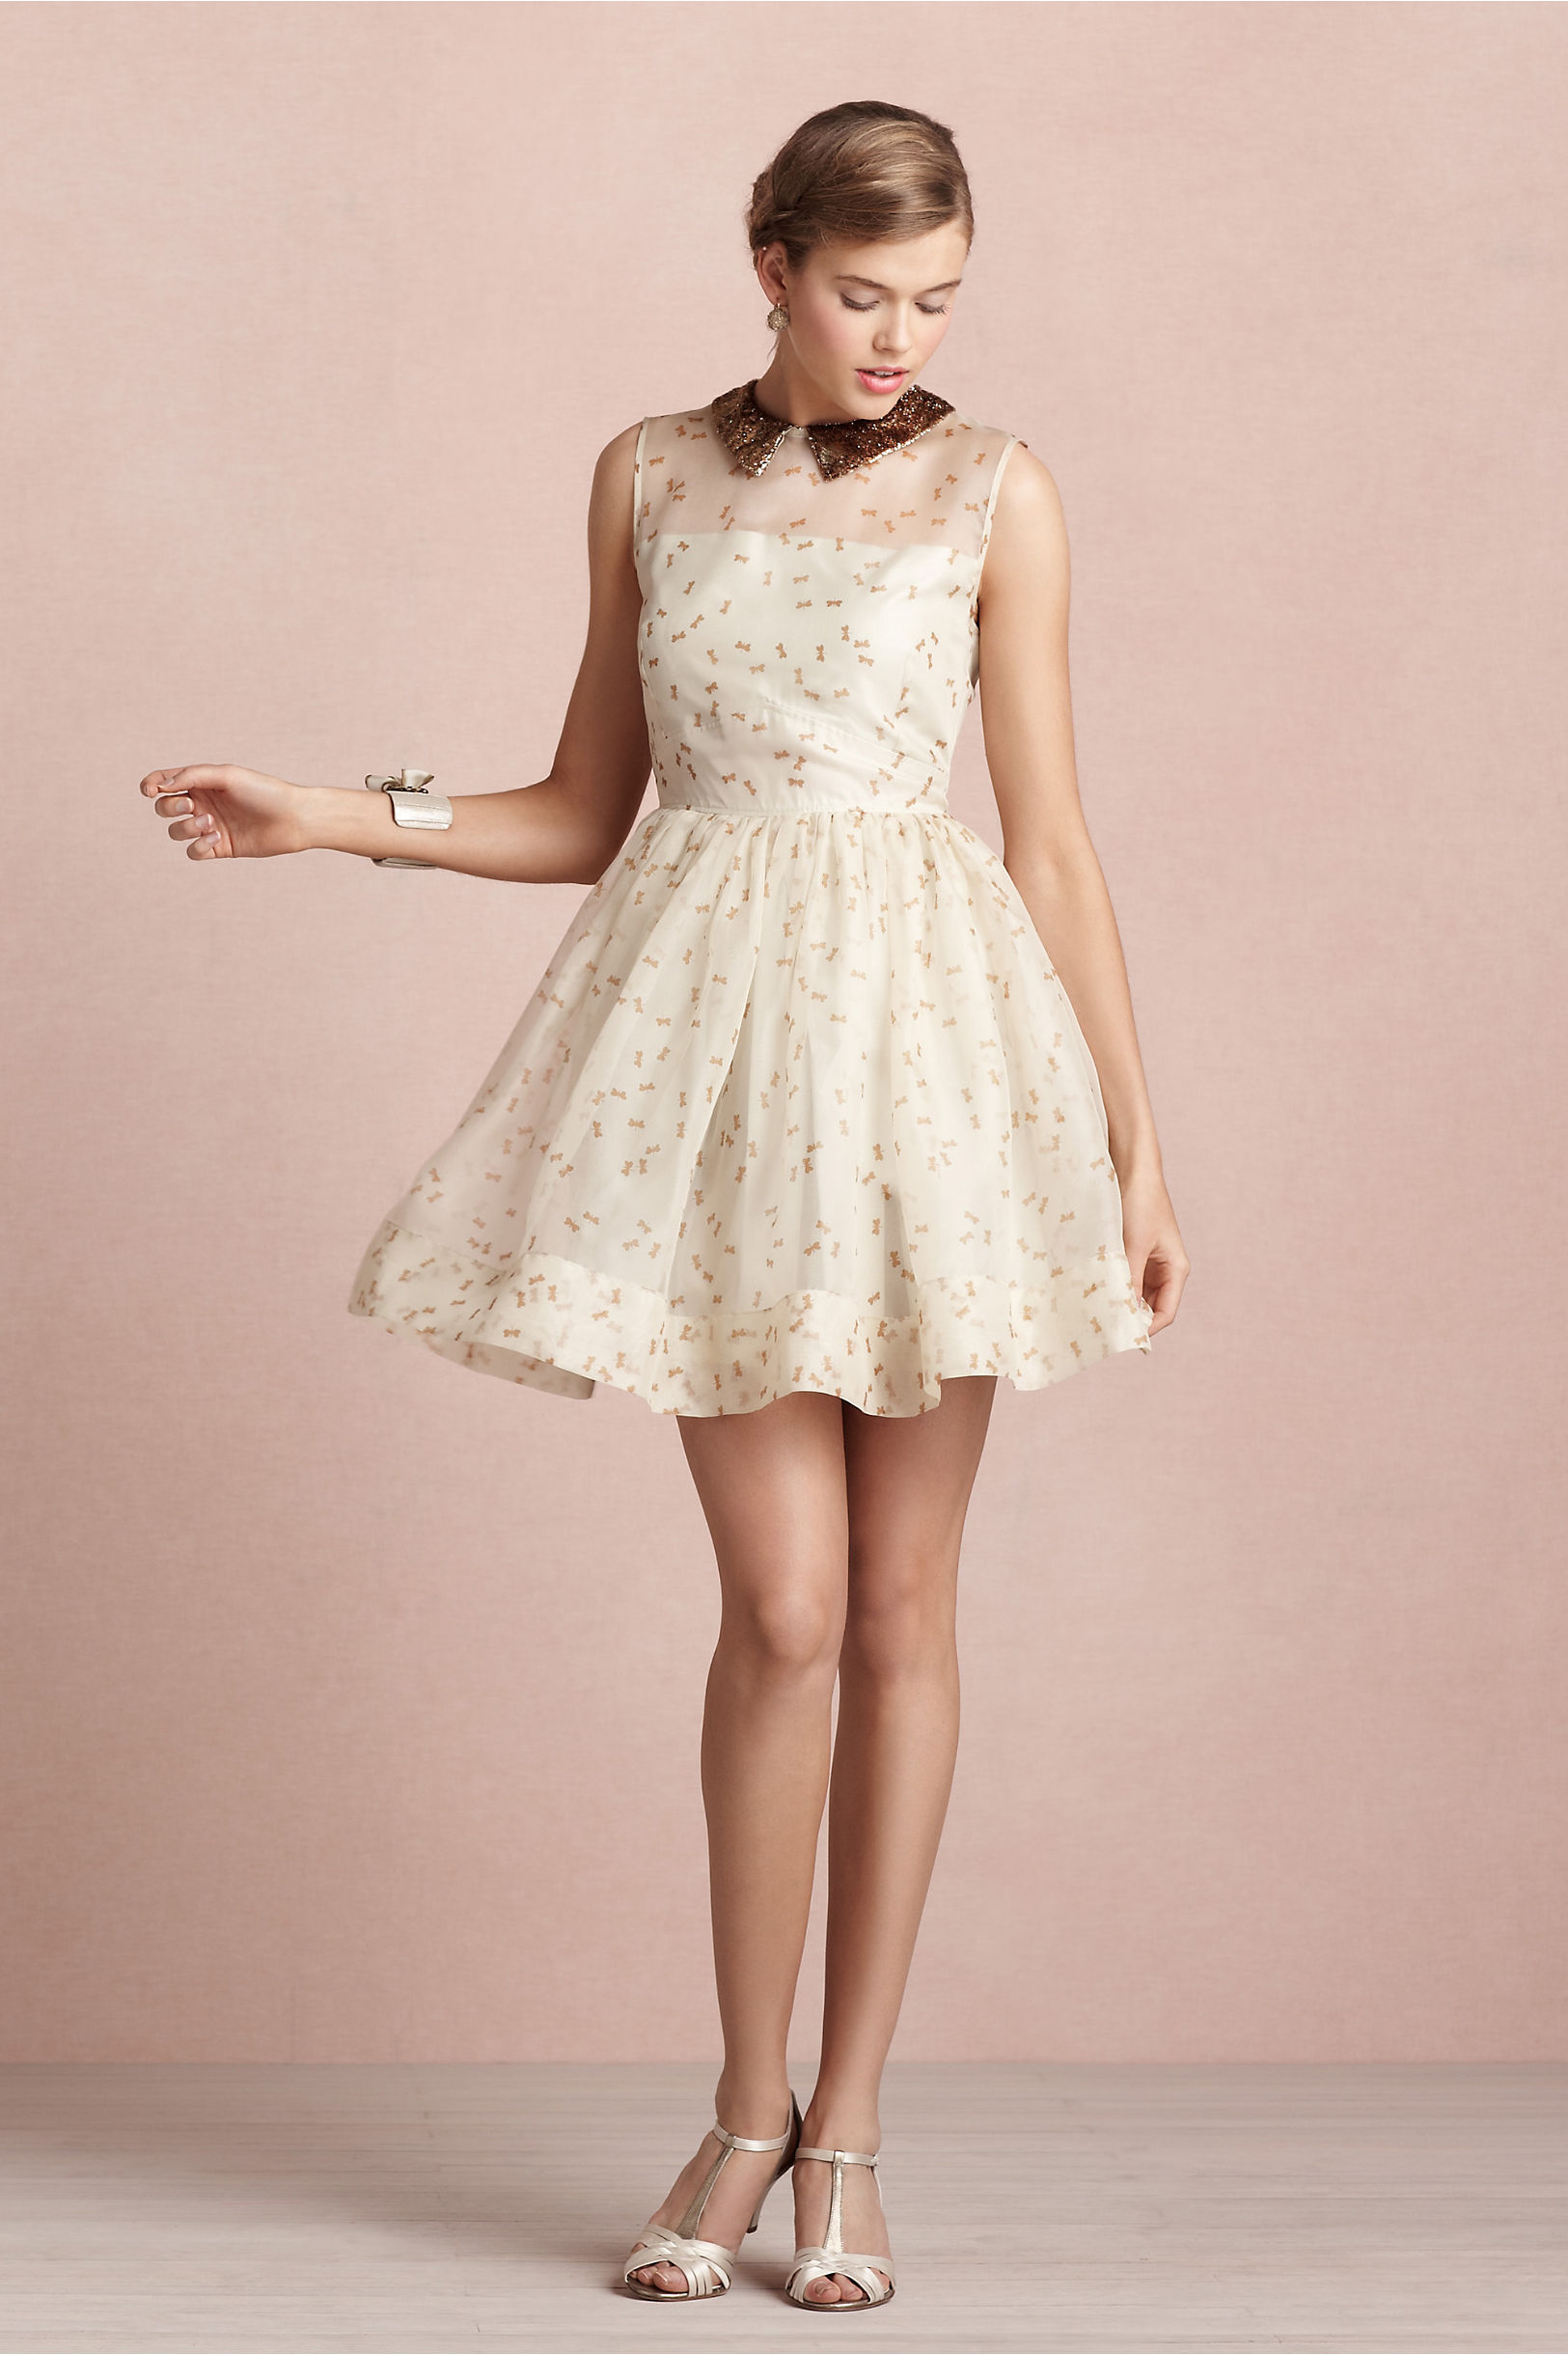 Dropwing dress in sale bhldn orla kiely ivory dropwing dress bhldn ombrellifo Image collections